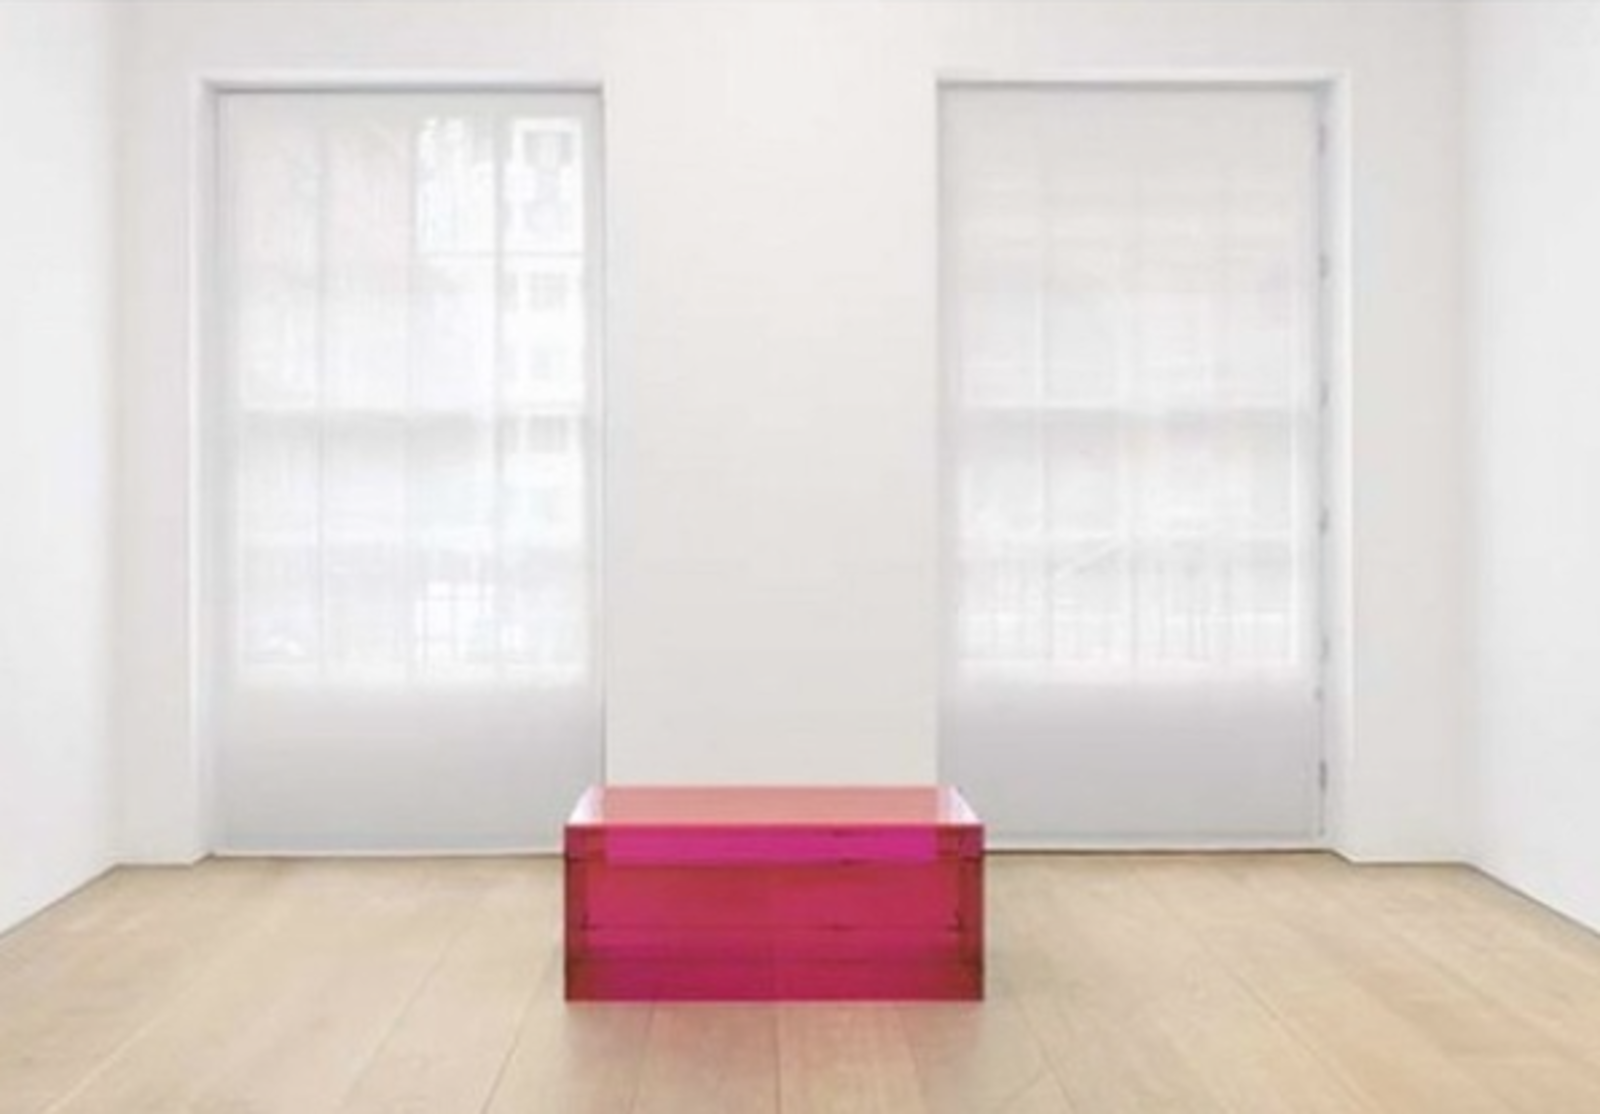 Donald Judd's Untitled, March 8 1965.  Instagram Account We Love: NYC Handbag-Maker Delves Into Furniture Design by Allie Weiss